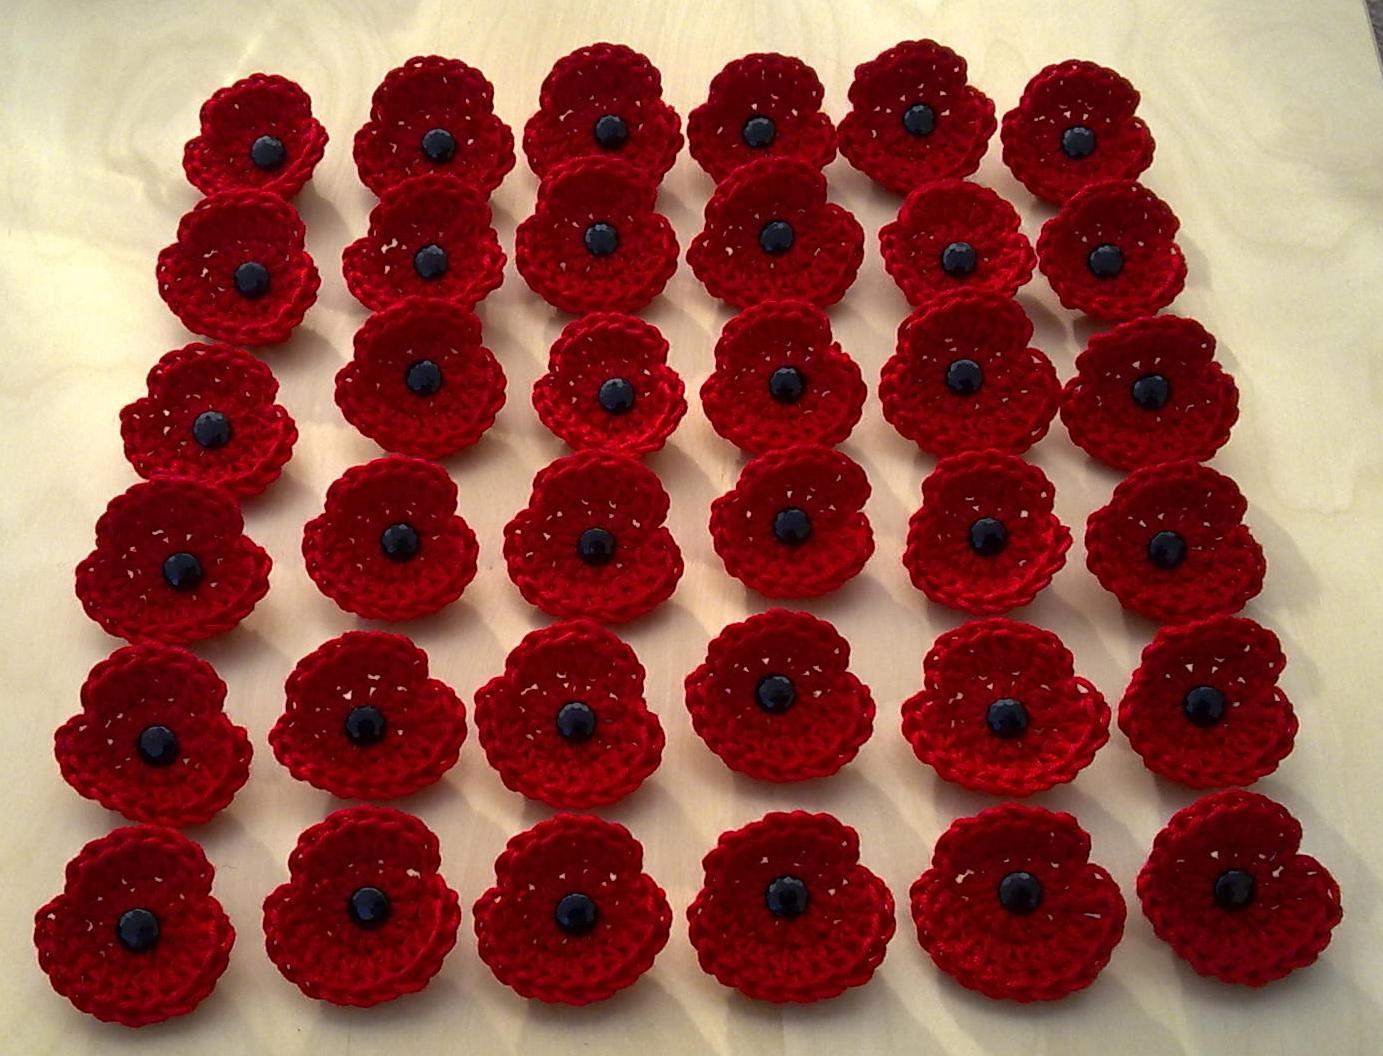 Cottage Crafts: Crocheted Remembrance Poppies 2011